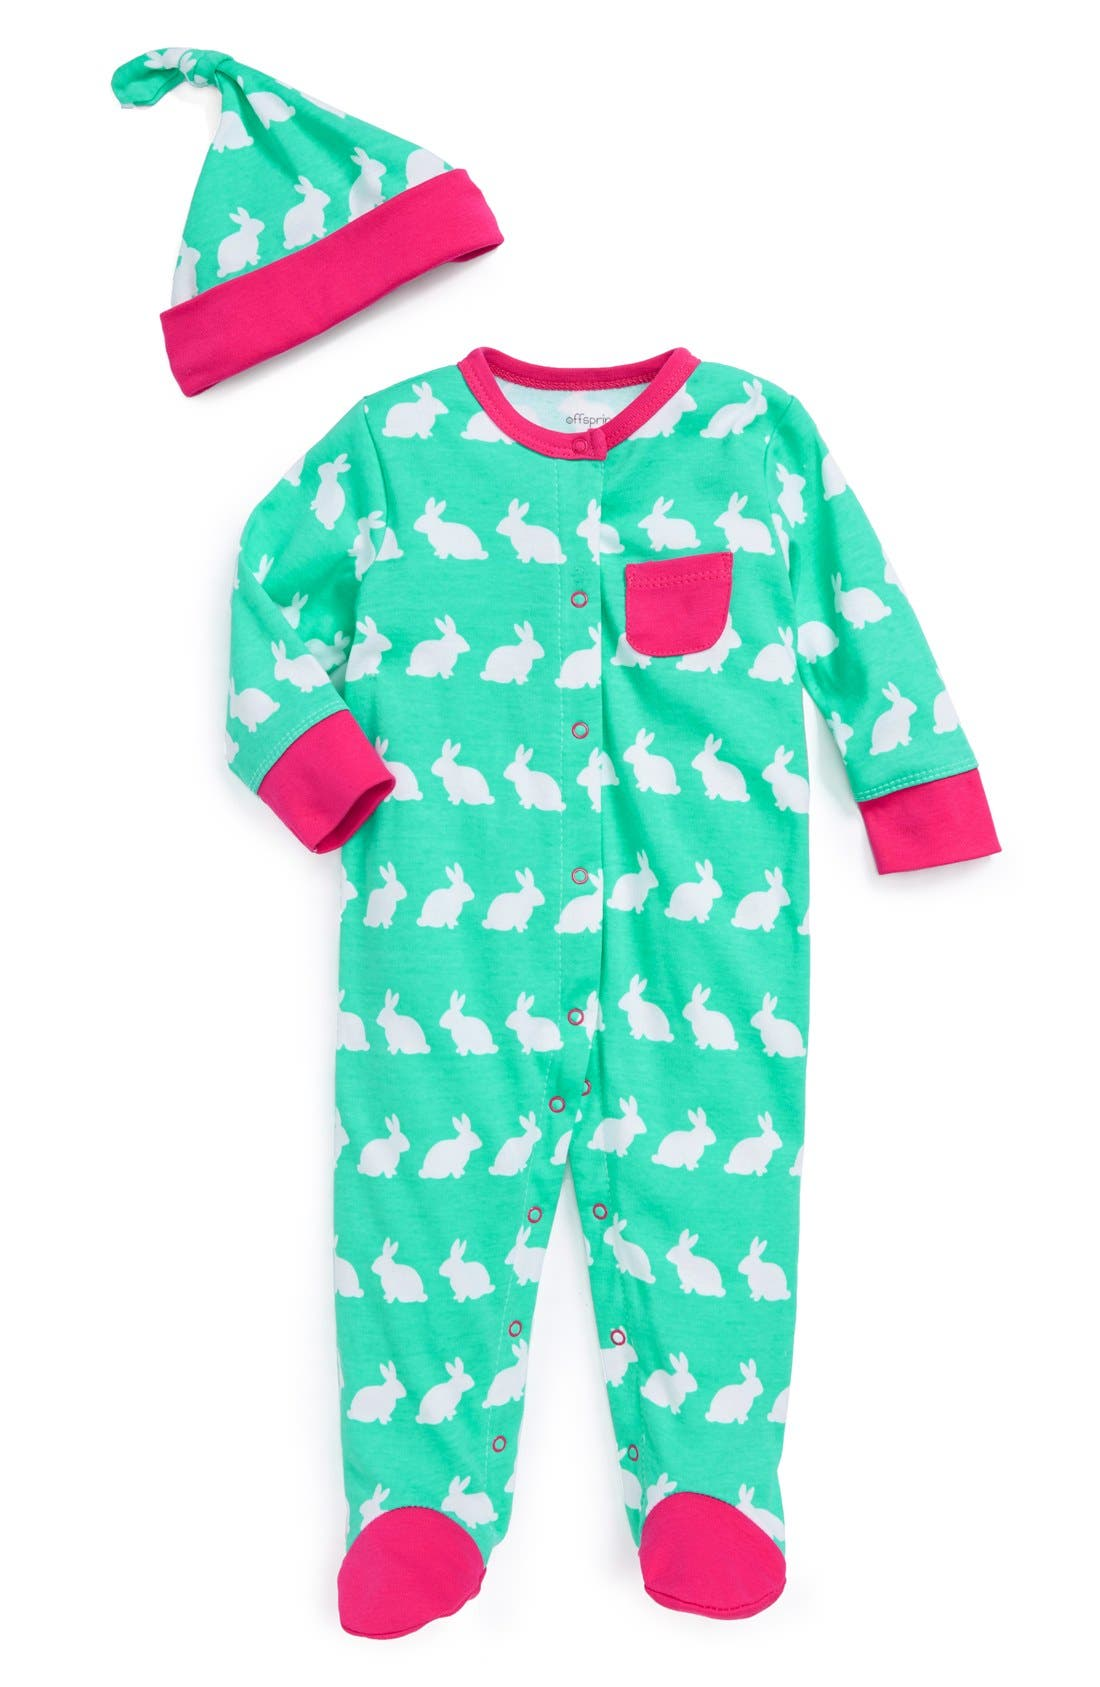 Alternate Image 1 Selected - Offspring 'Bunny' One-Piece & Hat (Baby Girls)